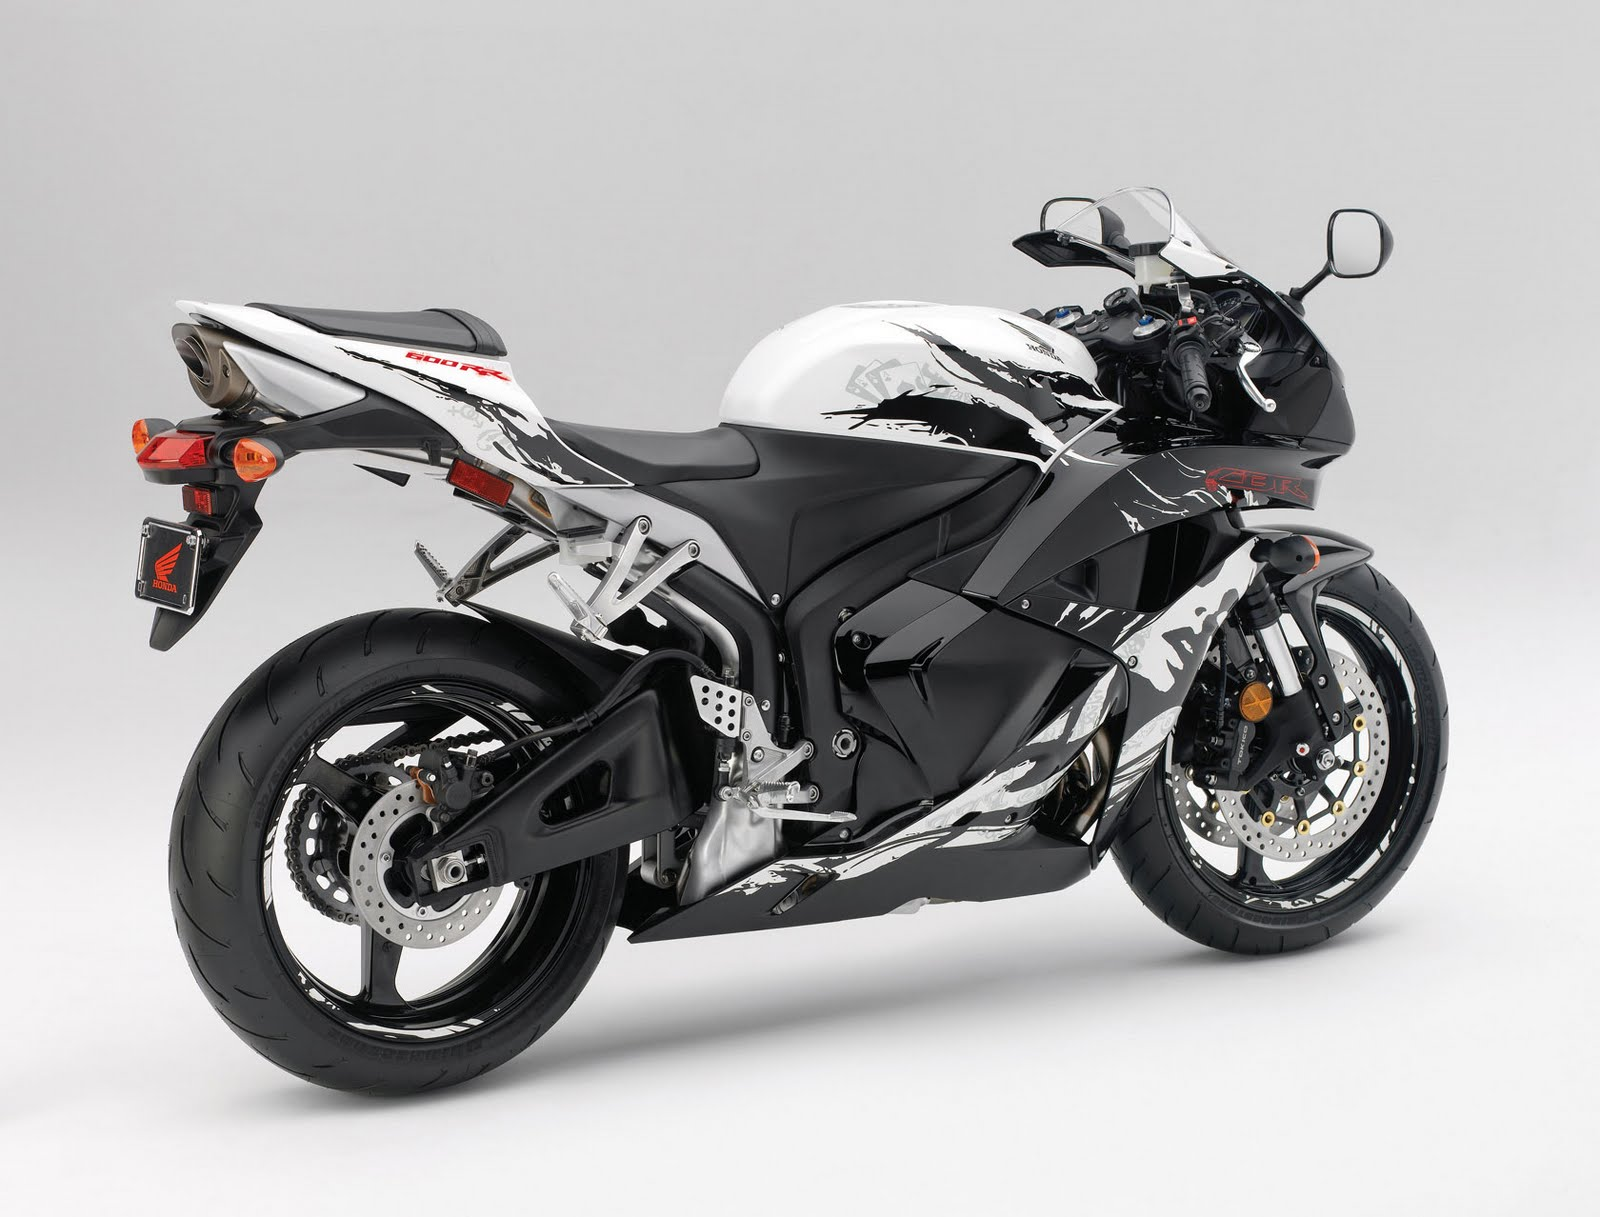 top motorcycle review 2010 honda cbr600rr abs. Black Bedroom Furniture Sets. Home Design Ideas